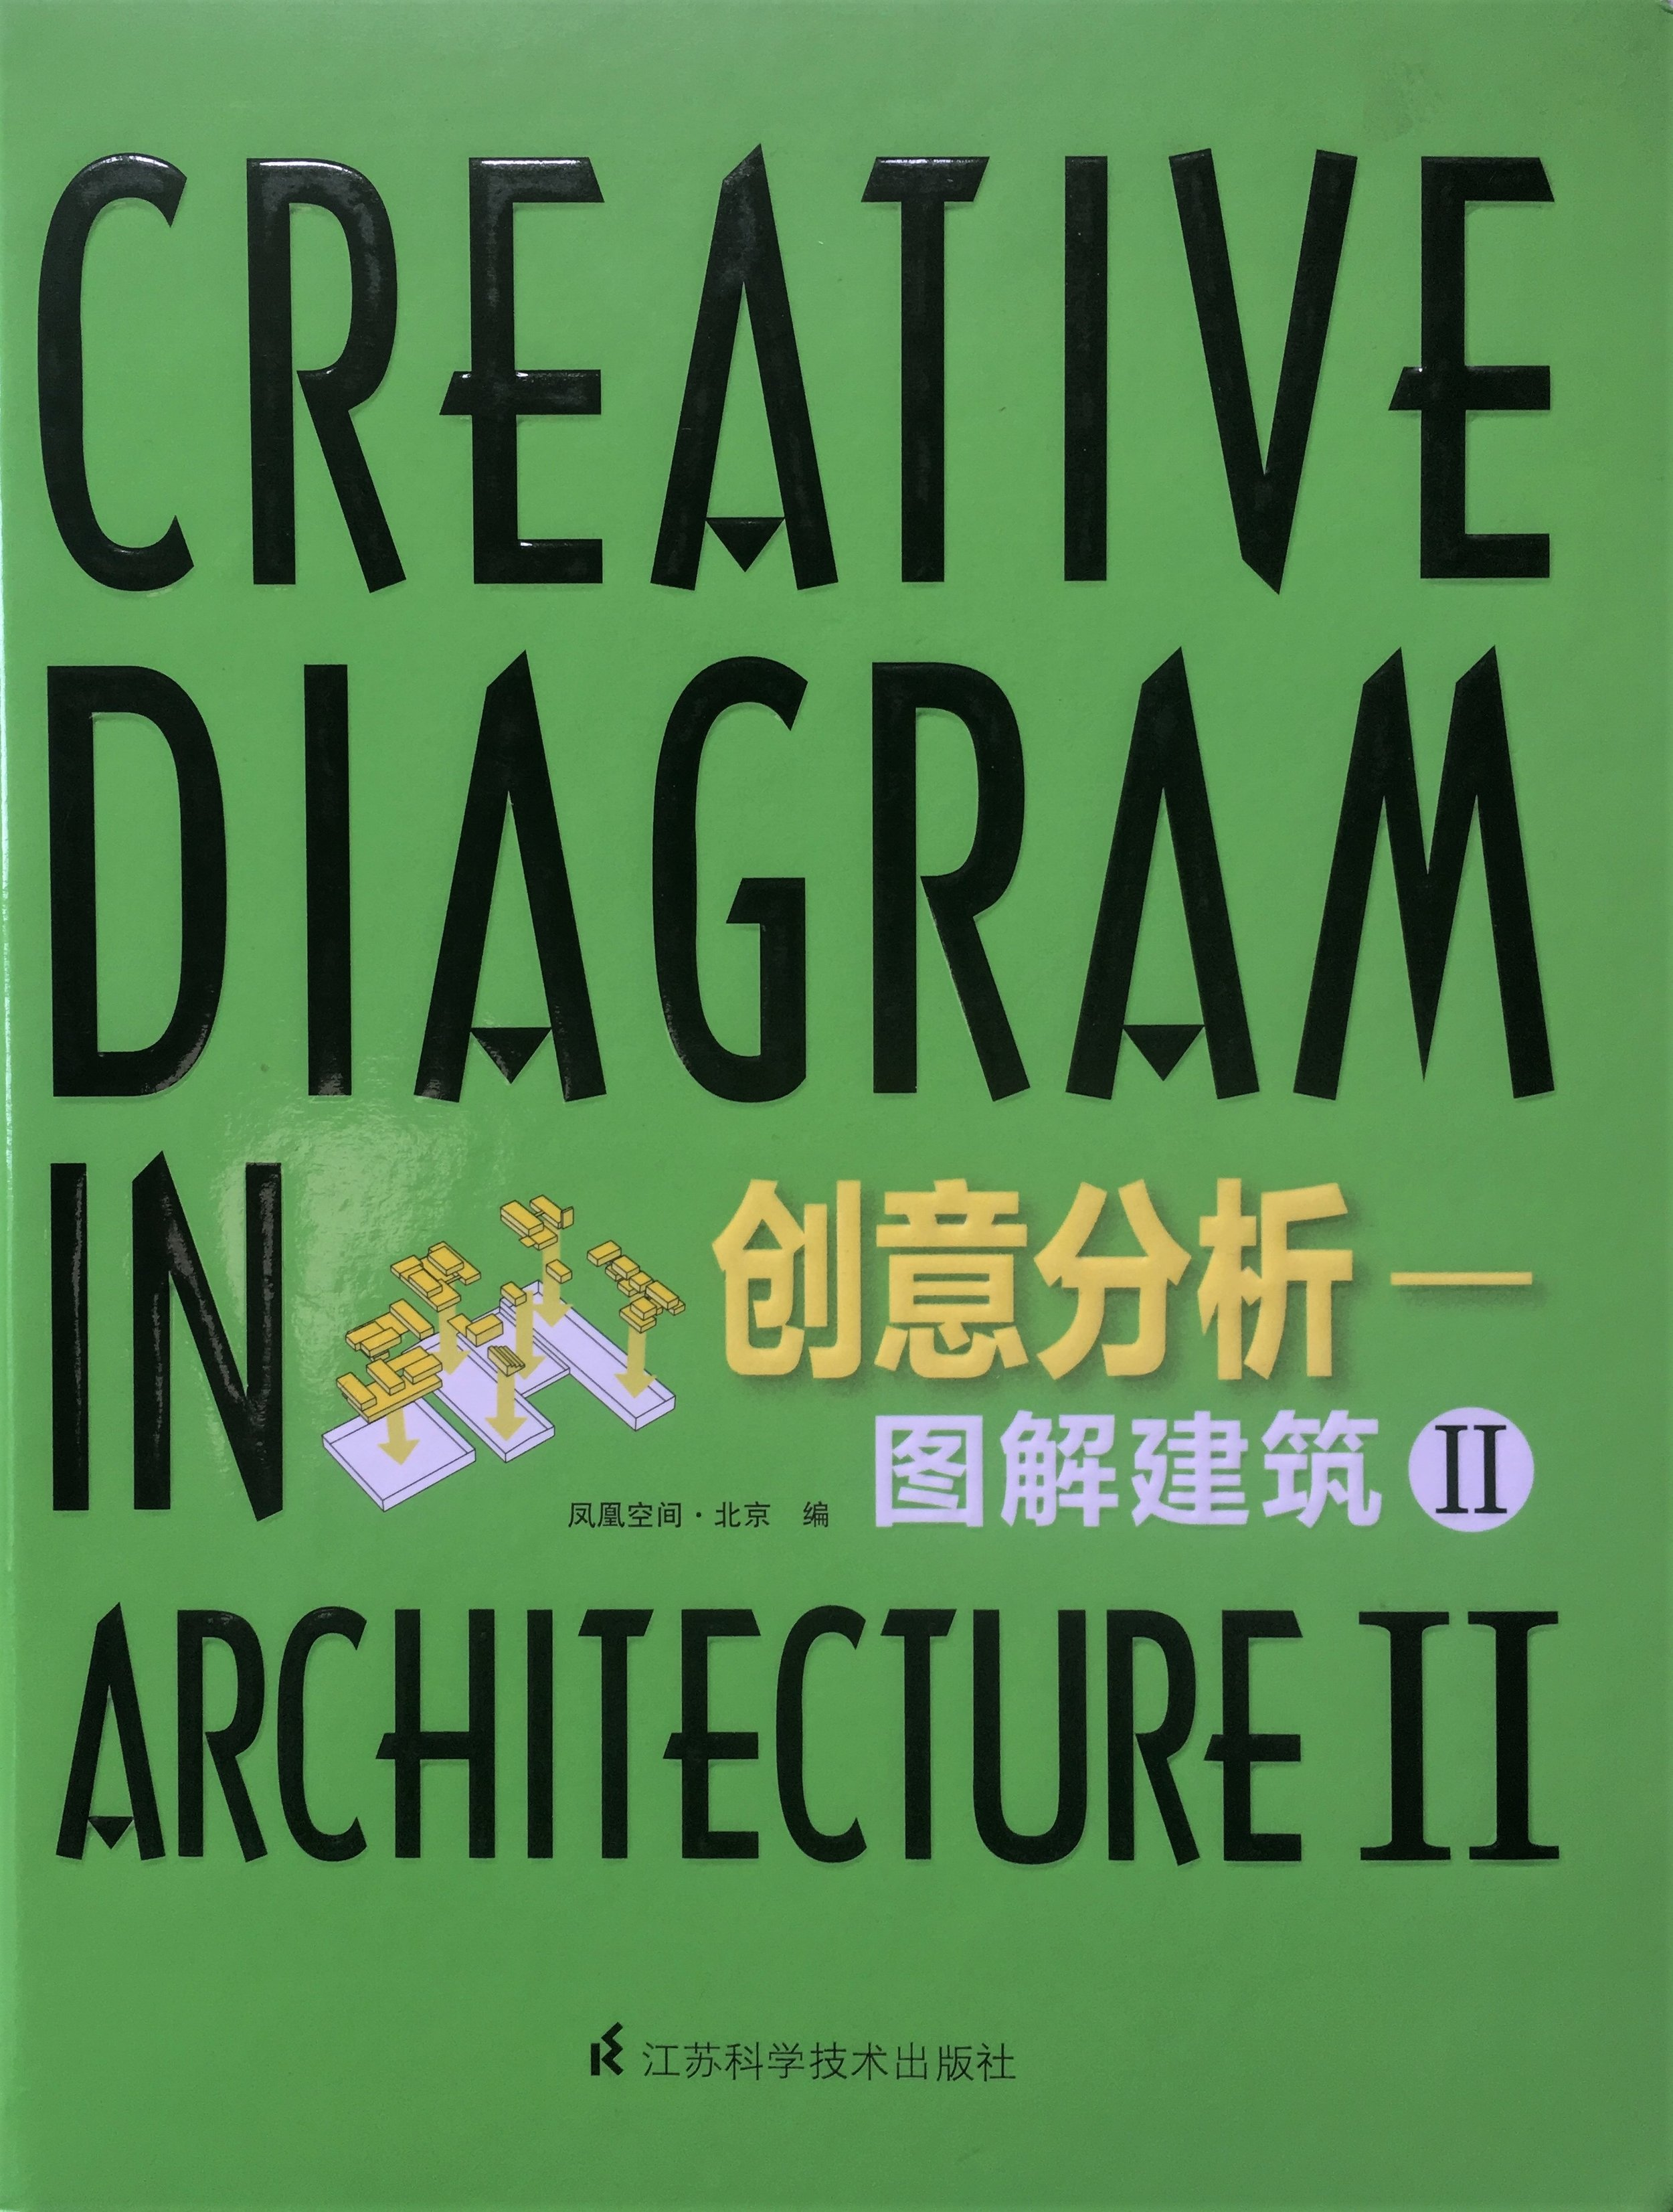 Diagrams In Architceture.jpeg